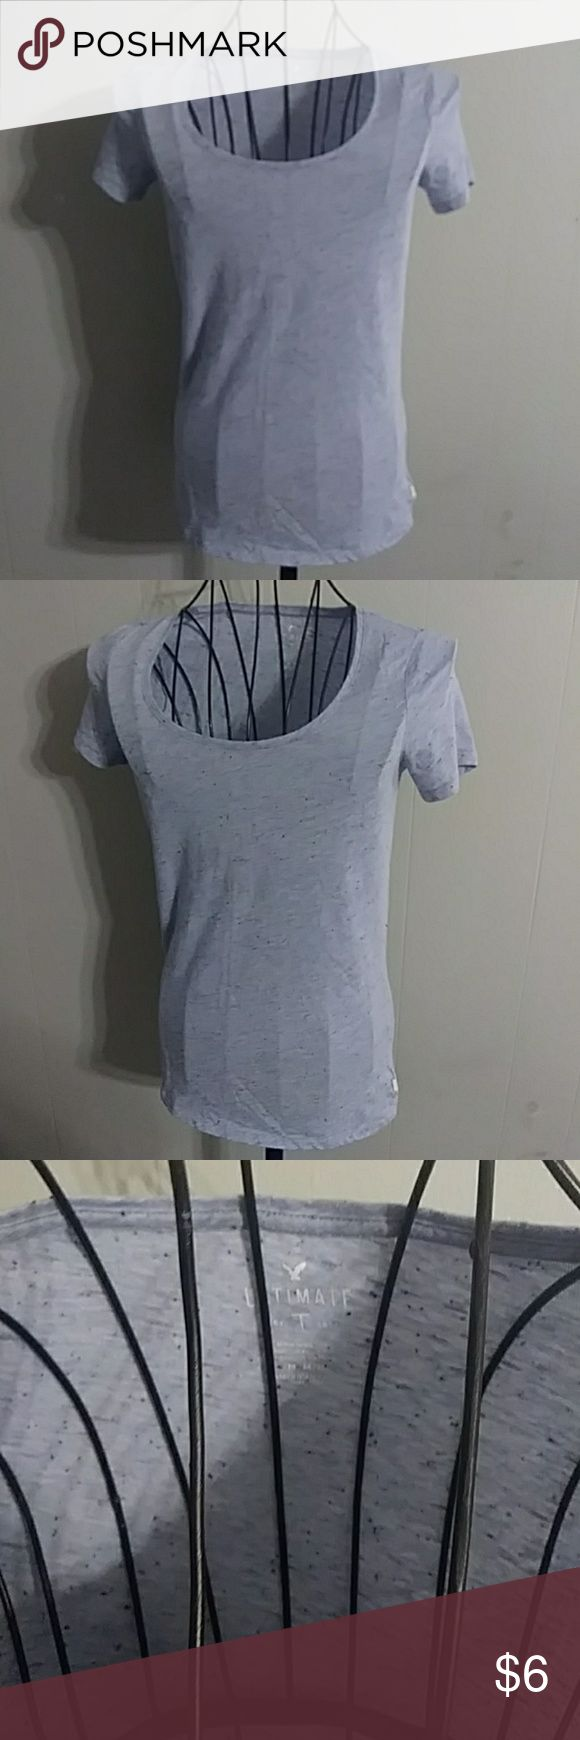 American Eagle t shirt Blue AE t shirt American Eagle Outfitters Tops Tees - Short Sleeve #americaneagleoutfitters